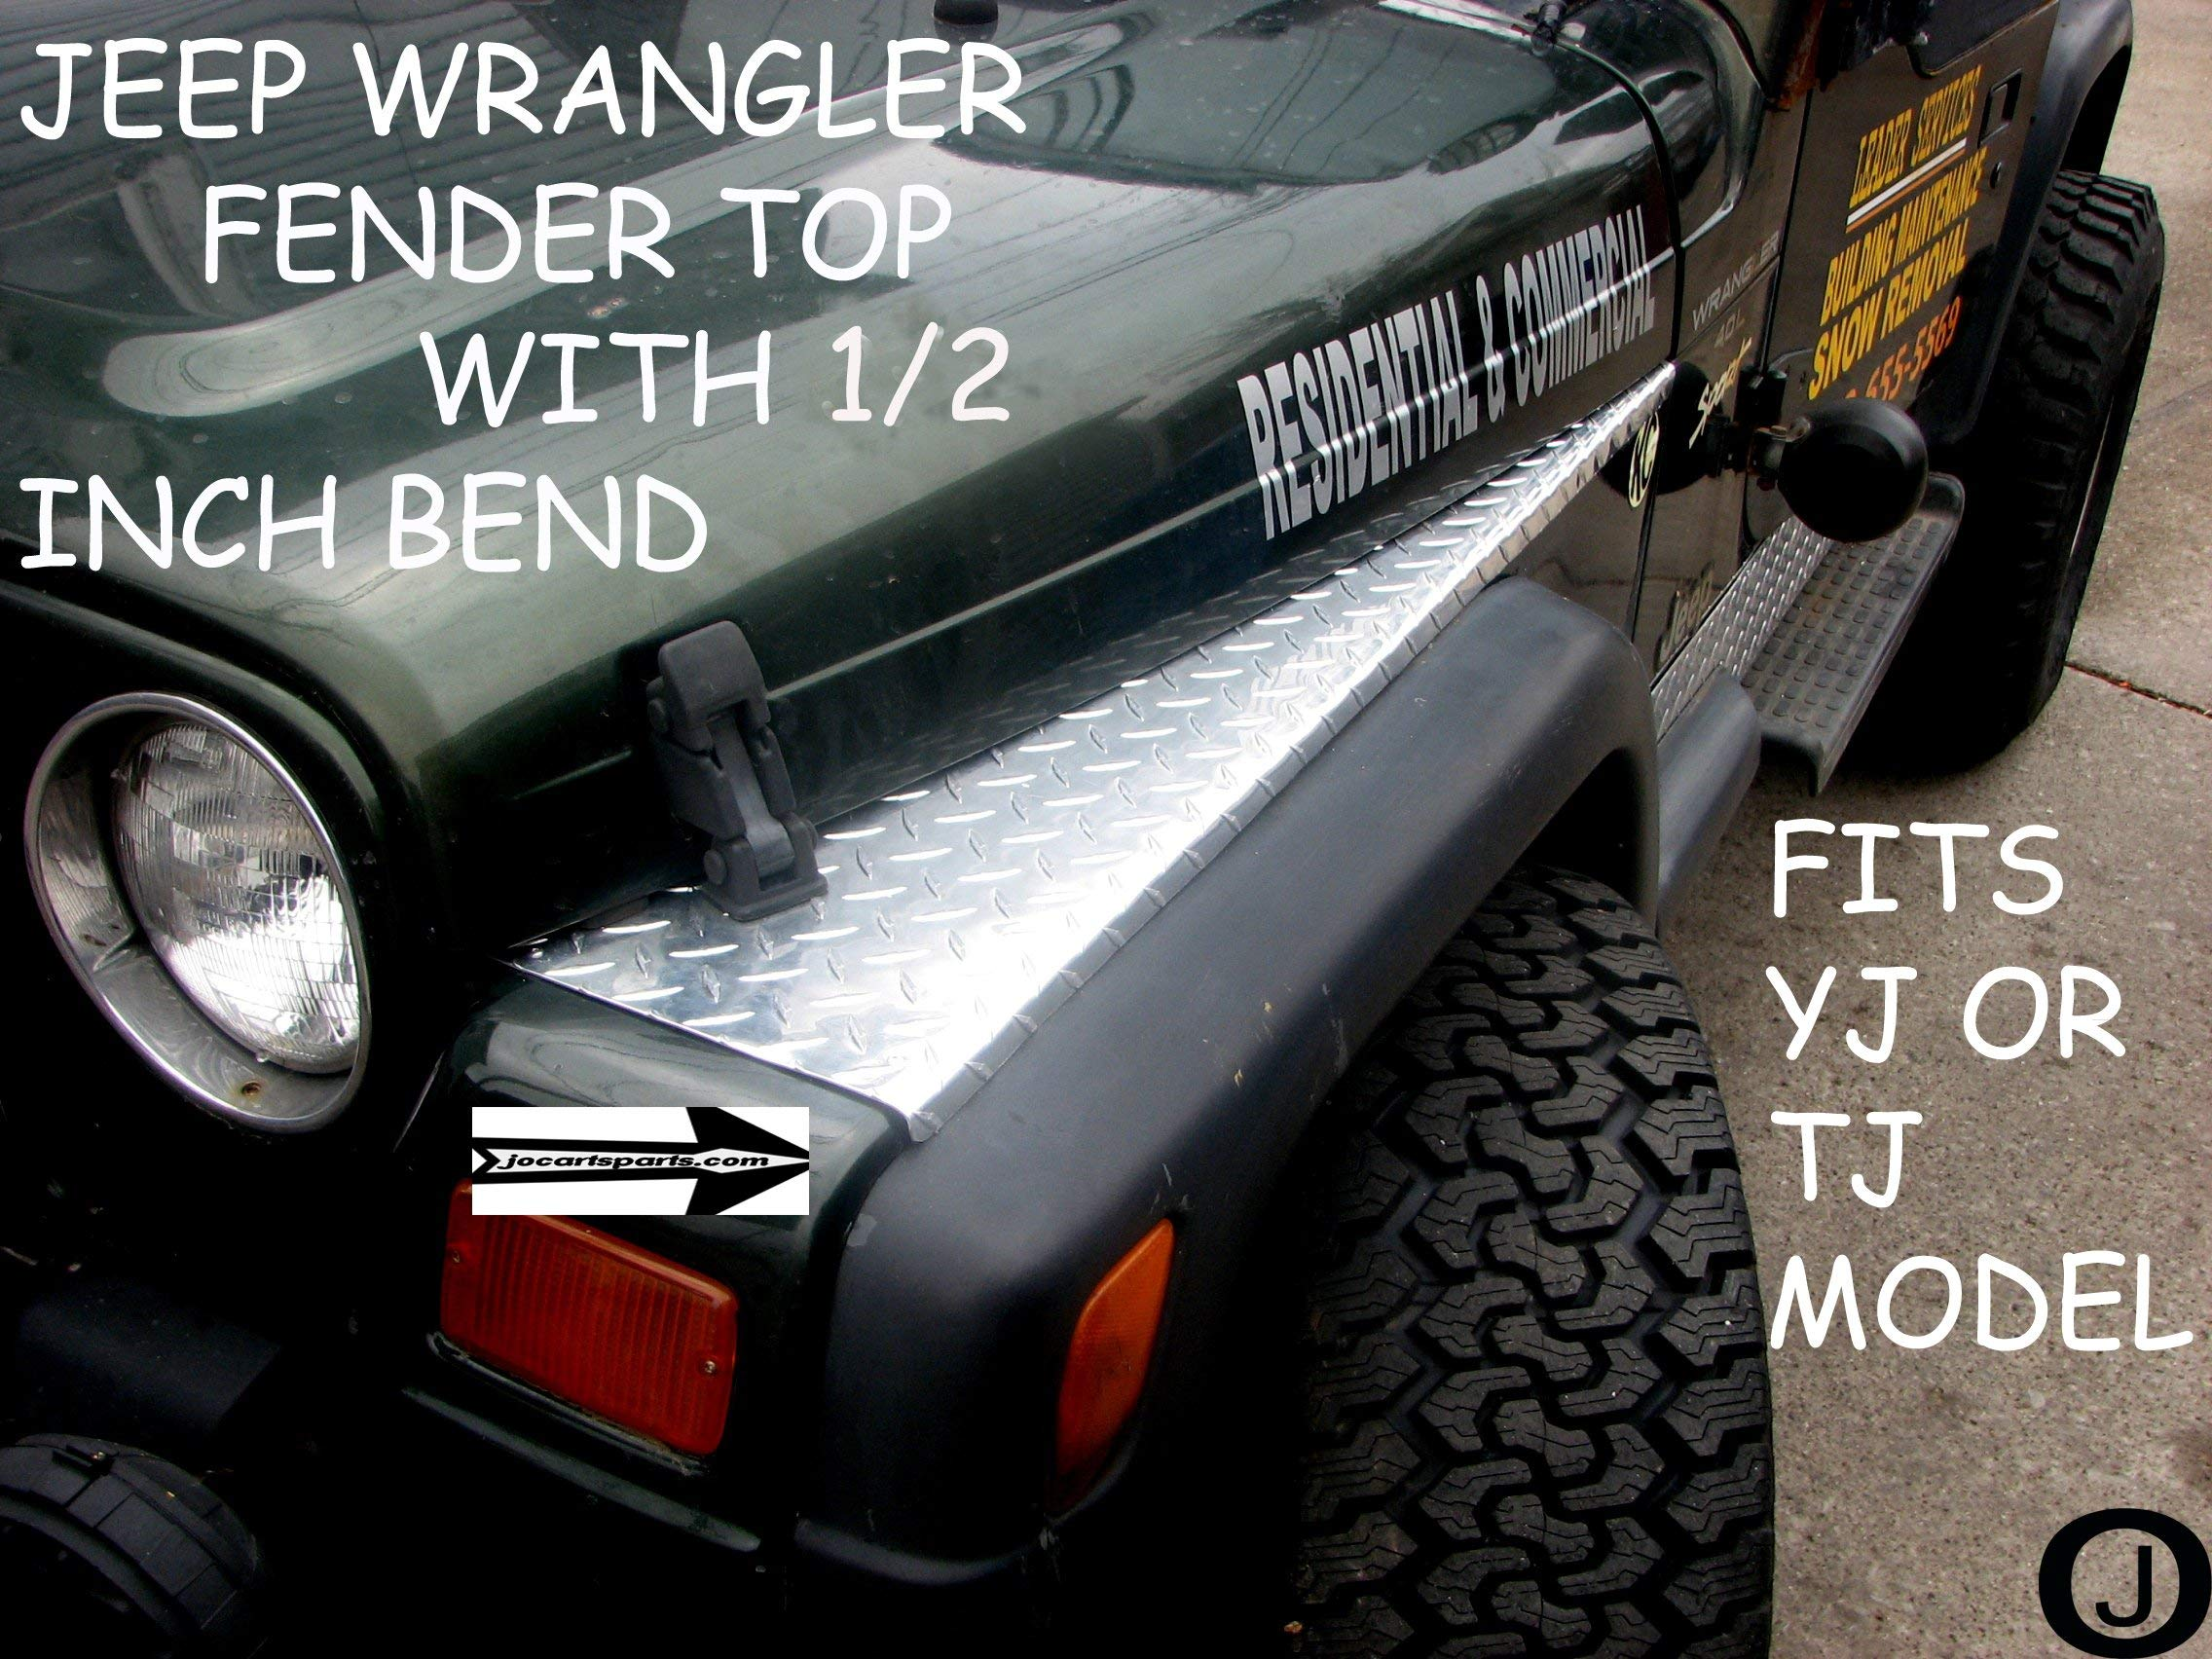 Fits With Jeeep Wrangler Tj Diamond Plate Full Top Fender Covers With Bend Buy Online In India At Desertcart In Productid 14750973